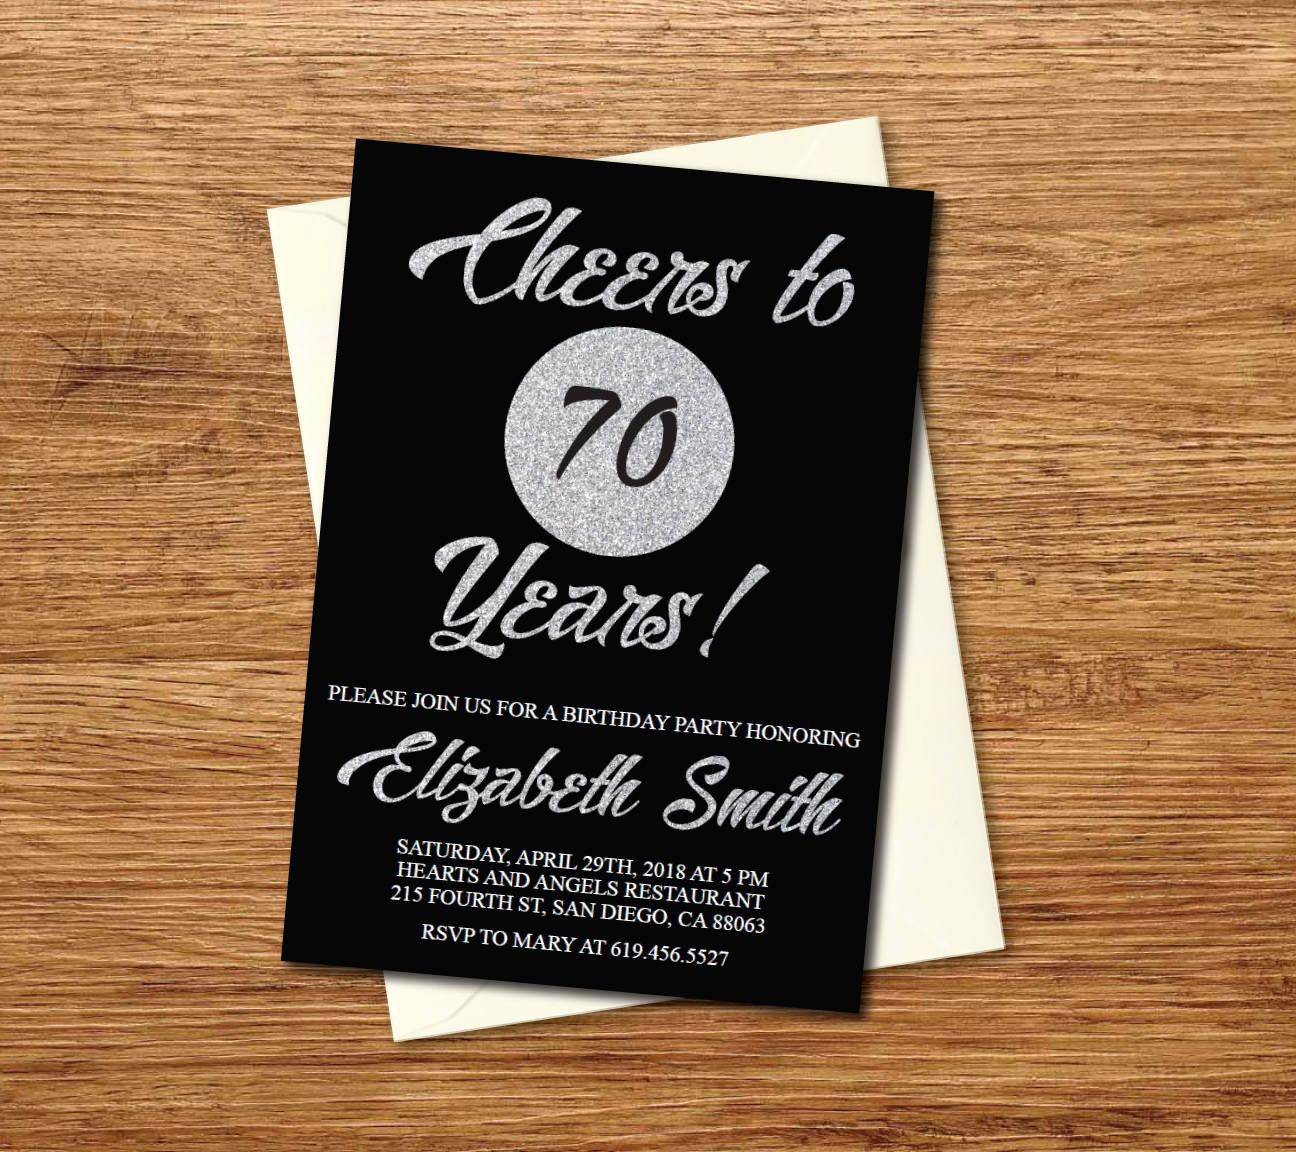 immaculate ideas for 70th birthday invitations